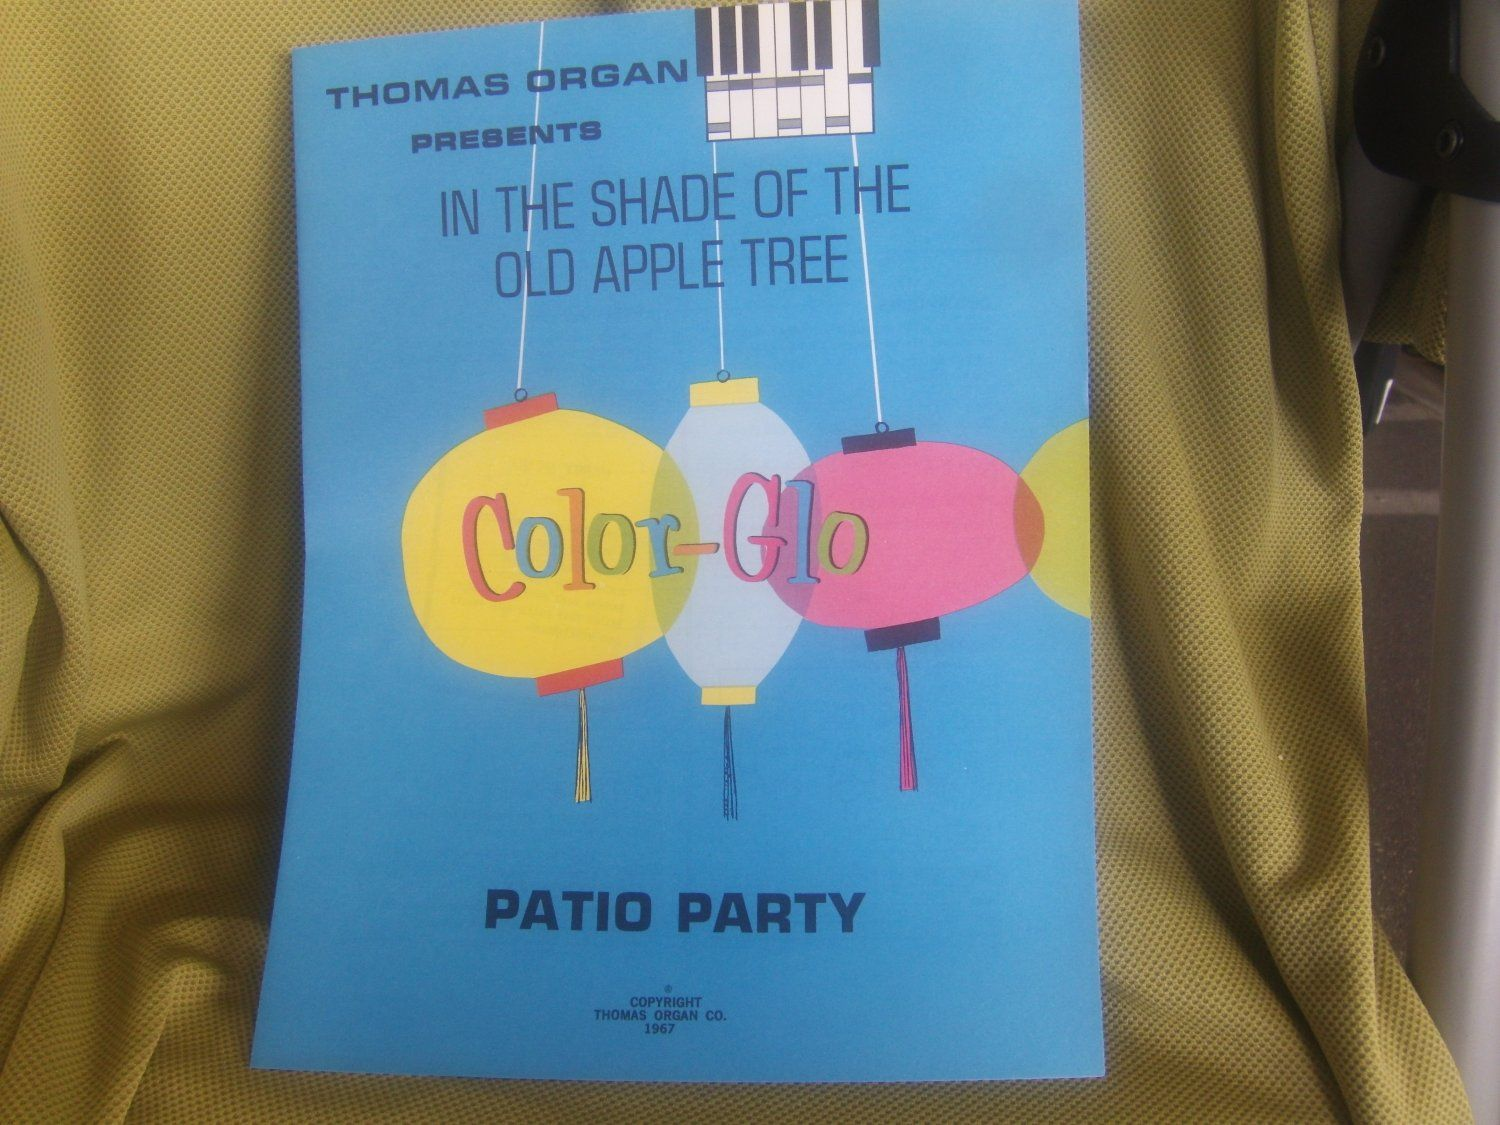 IN+THE+SHADE+OF+THE+OLD+APPLE+TREE+COLOR-GLO+PATIO+PARTY++sheet+music